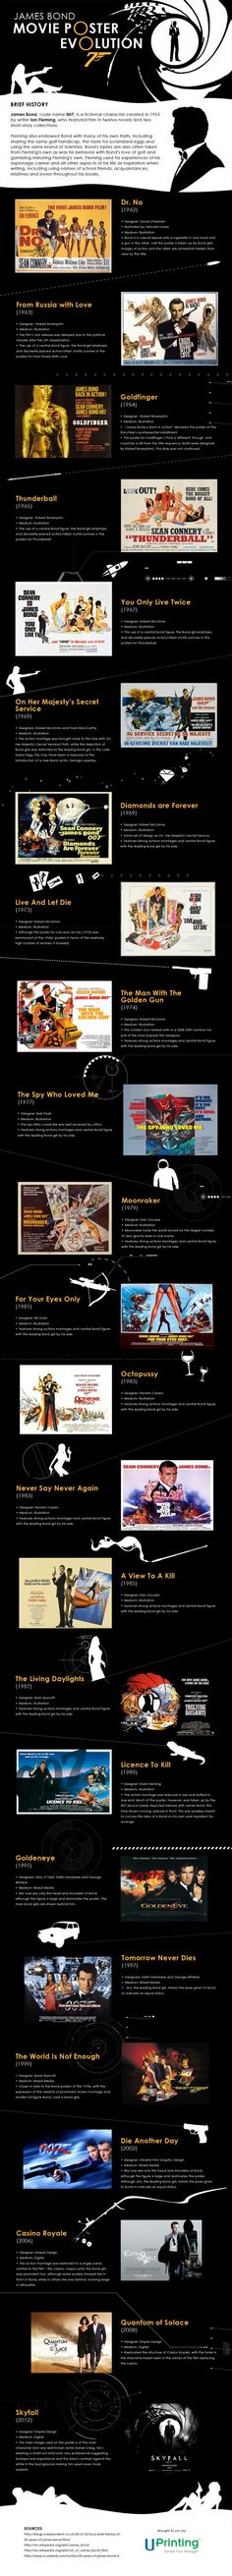 A great collection of all James Bond Movie Posters. Share your thoughts below.   A great infograph from Uprinting Blog.